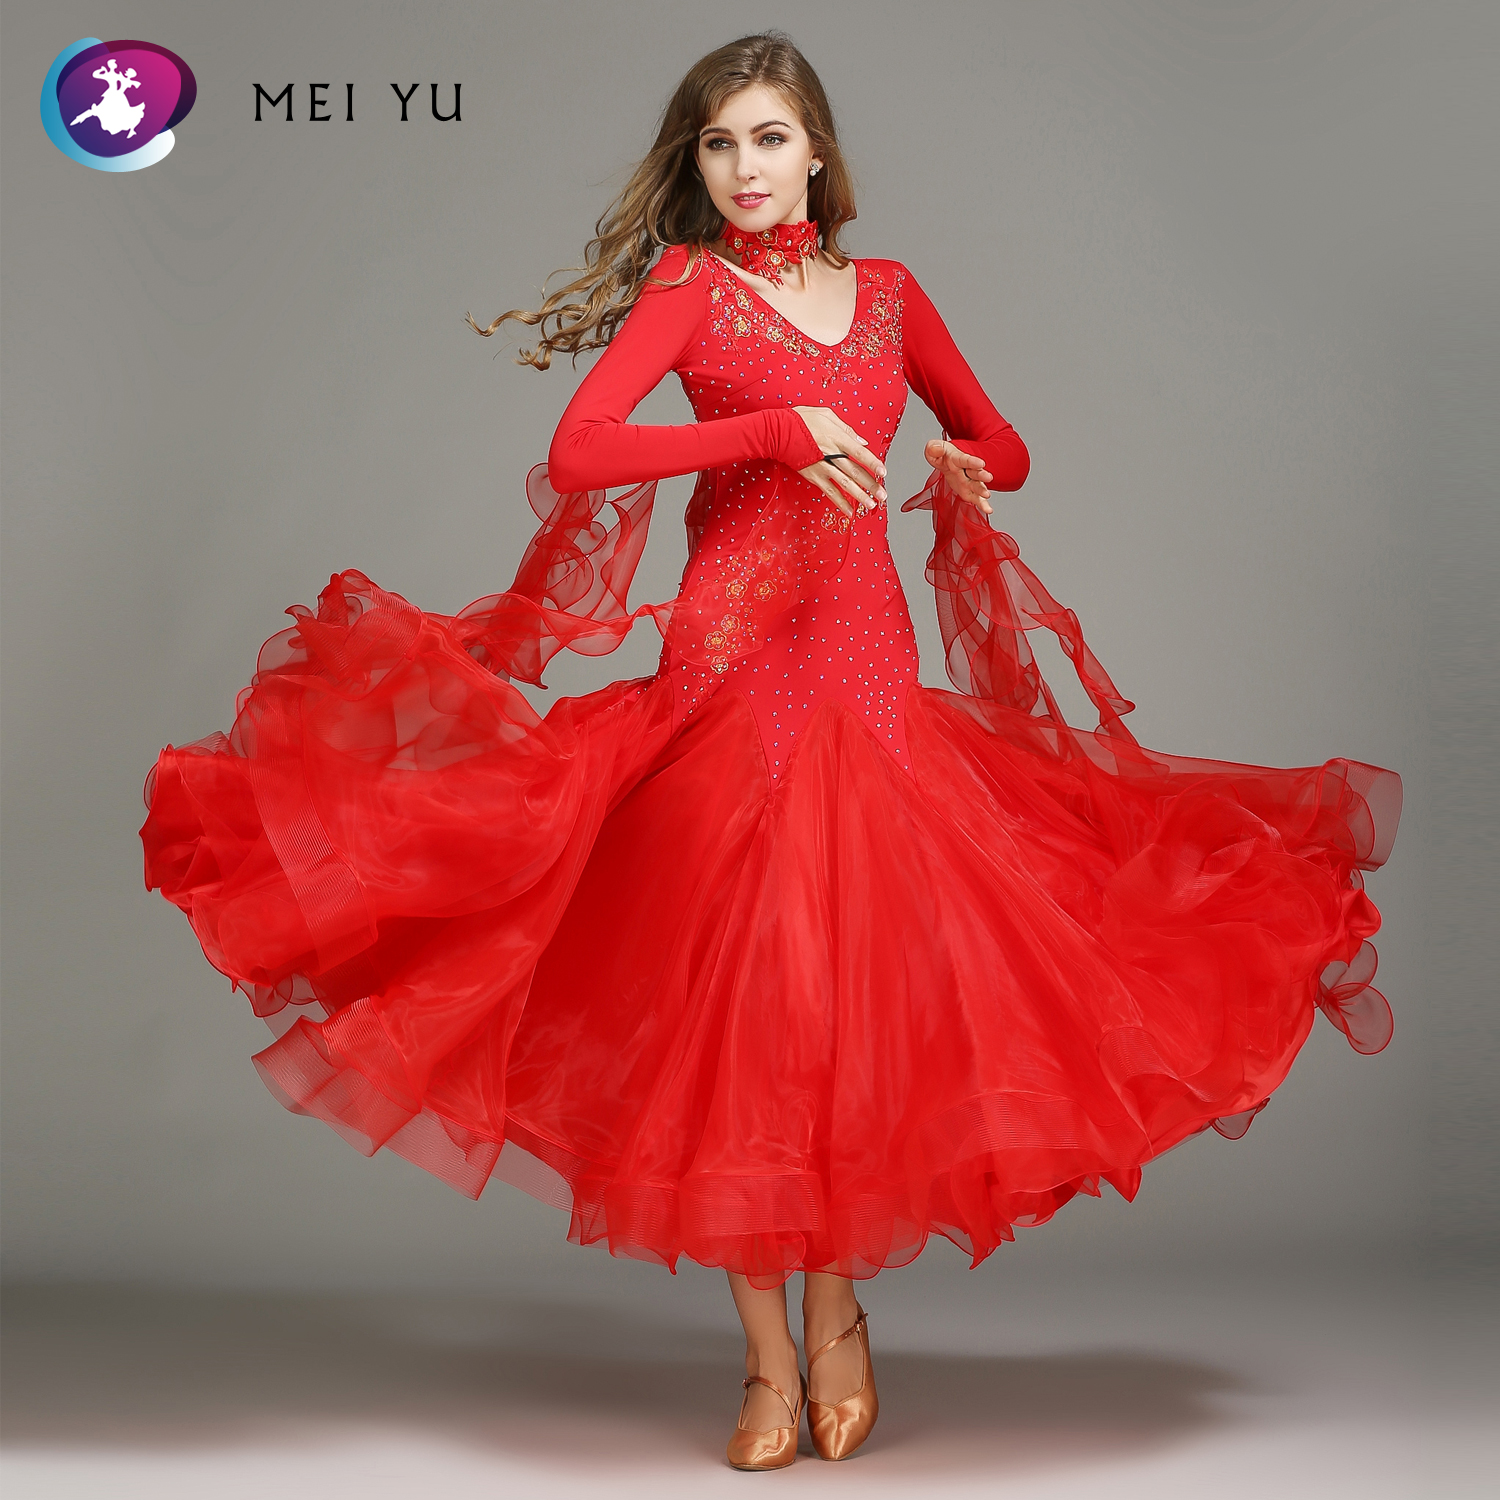 Smart Mei Yu Hb195 2018 New Modern Dance Costume Women Lady Adult Waltzing Tango Dancing Dress Ballroom Costume Evening Party Dress Big Clearance Sale Stage & Dance Wear